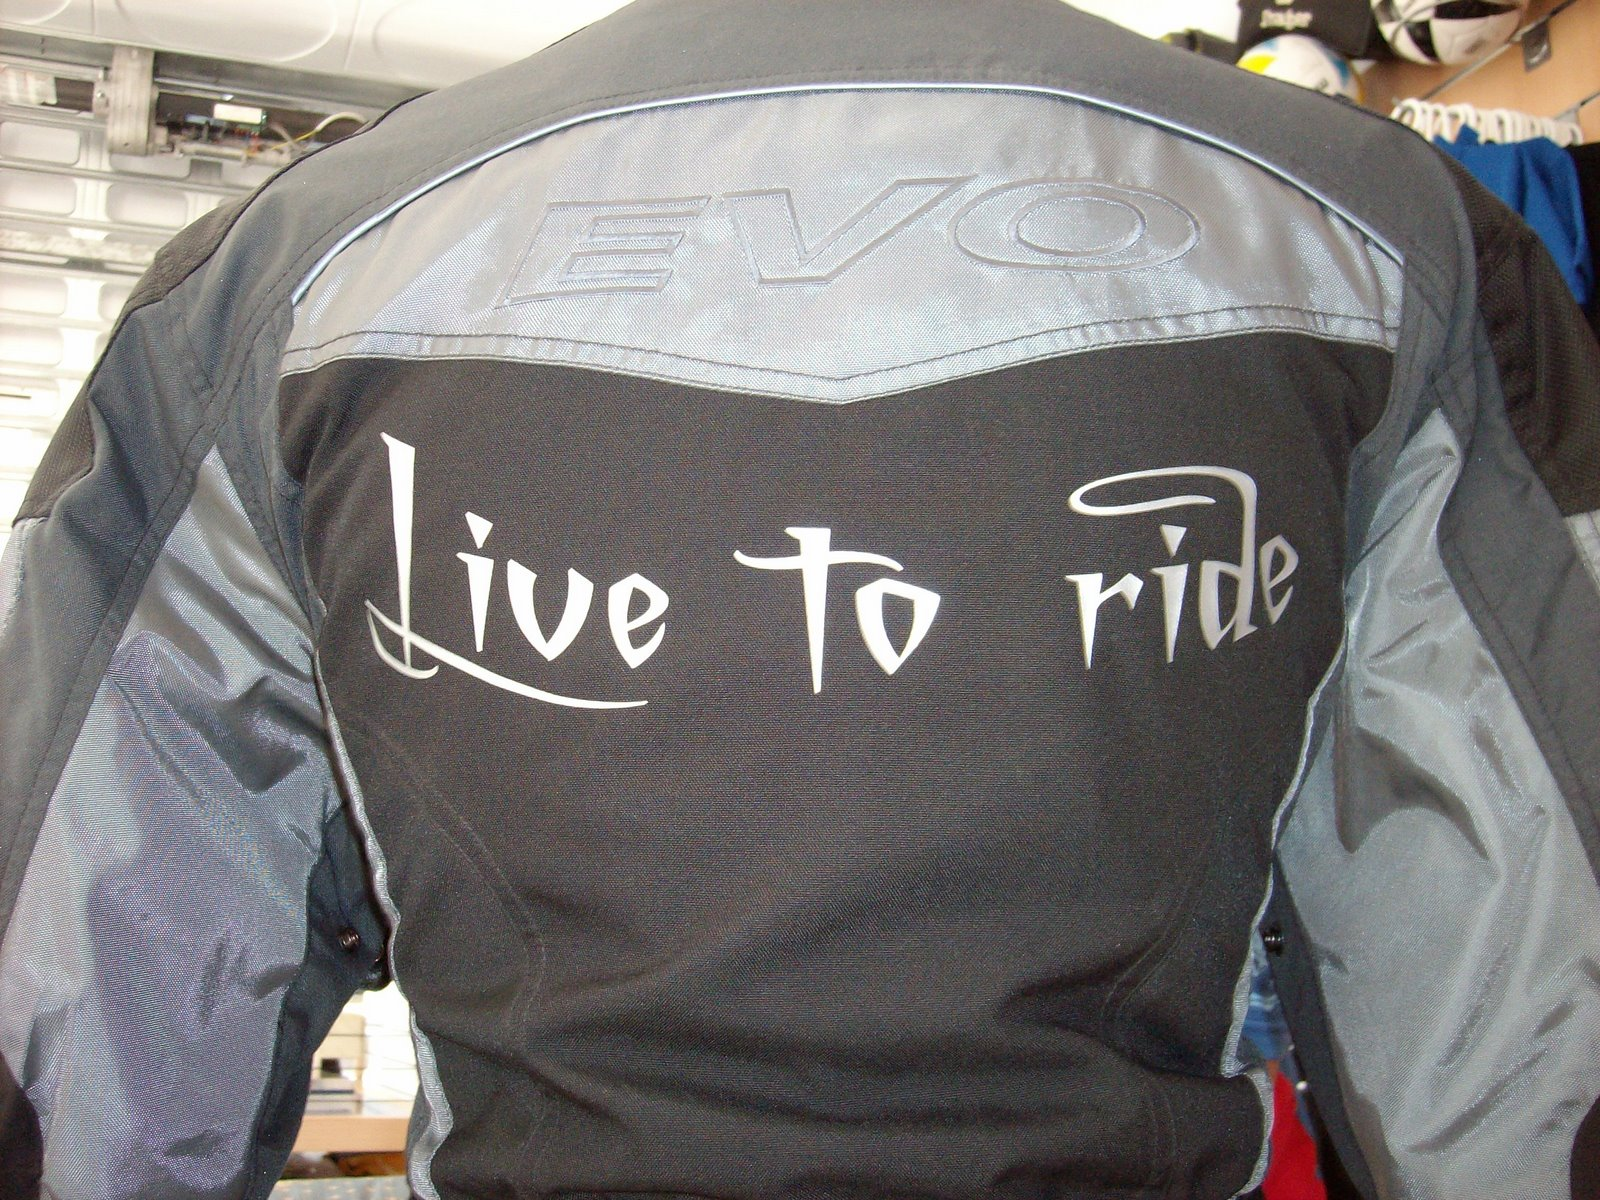 Chaqueta motera Live to ride